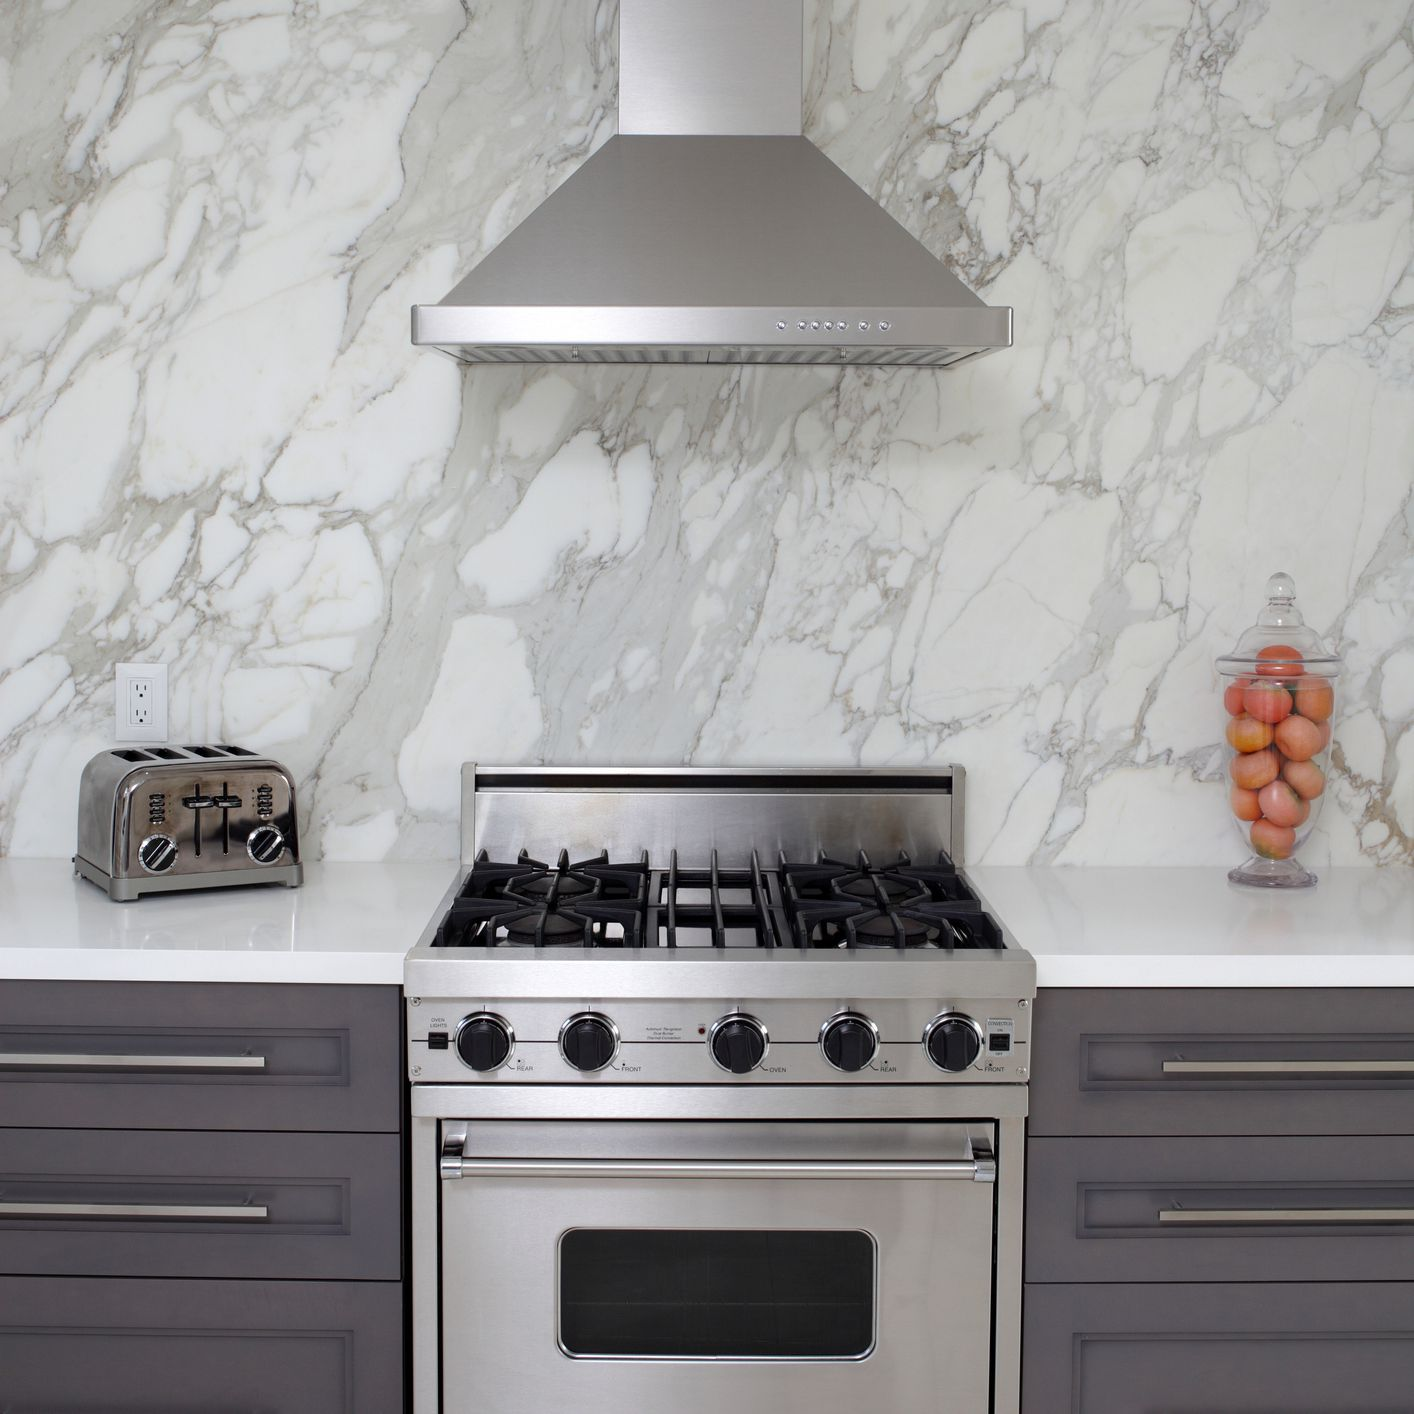 How To Clean A Kitchen Range Hood And Filter